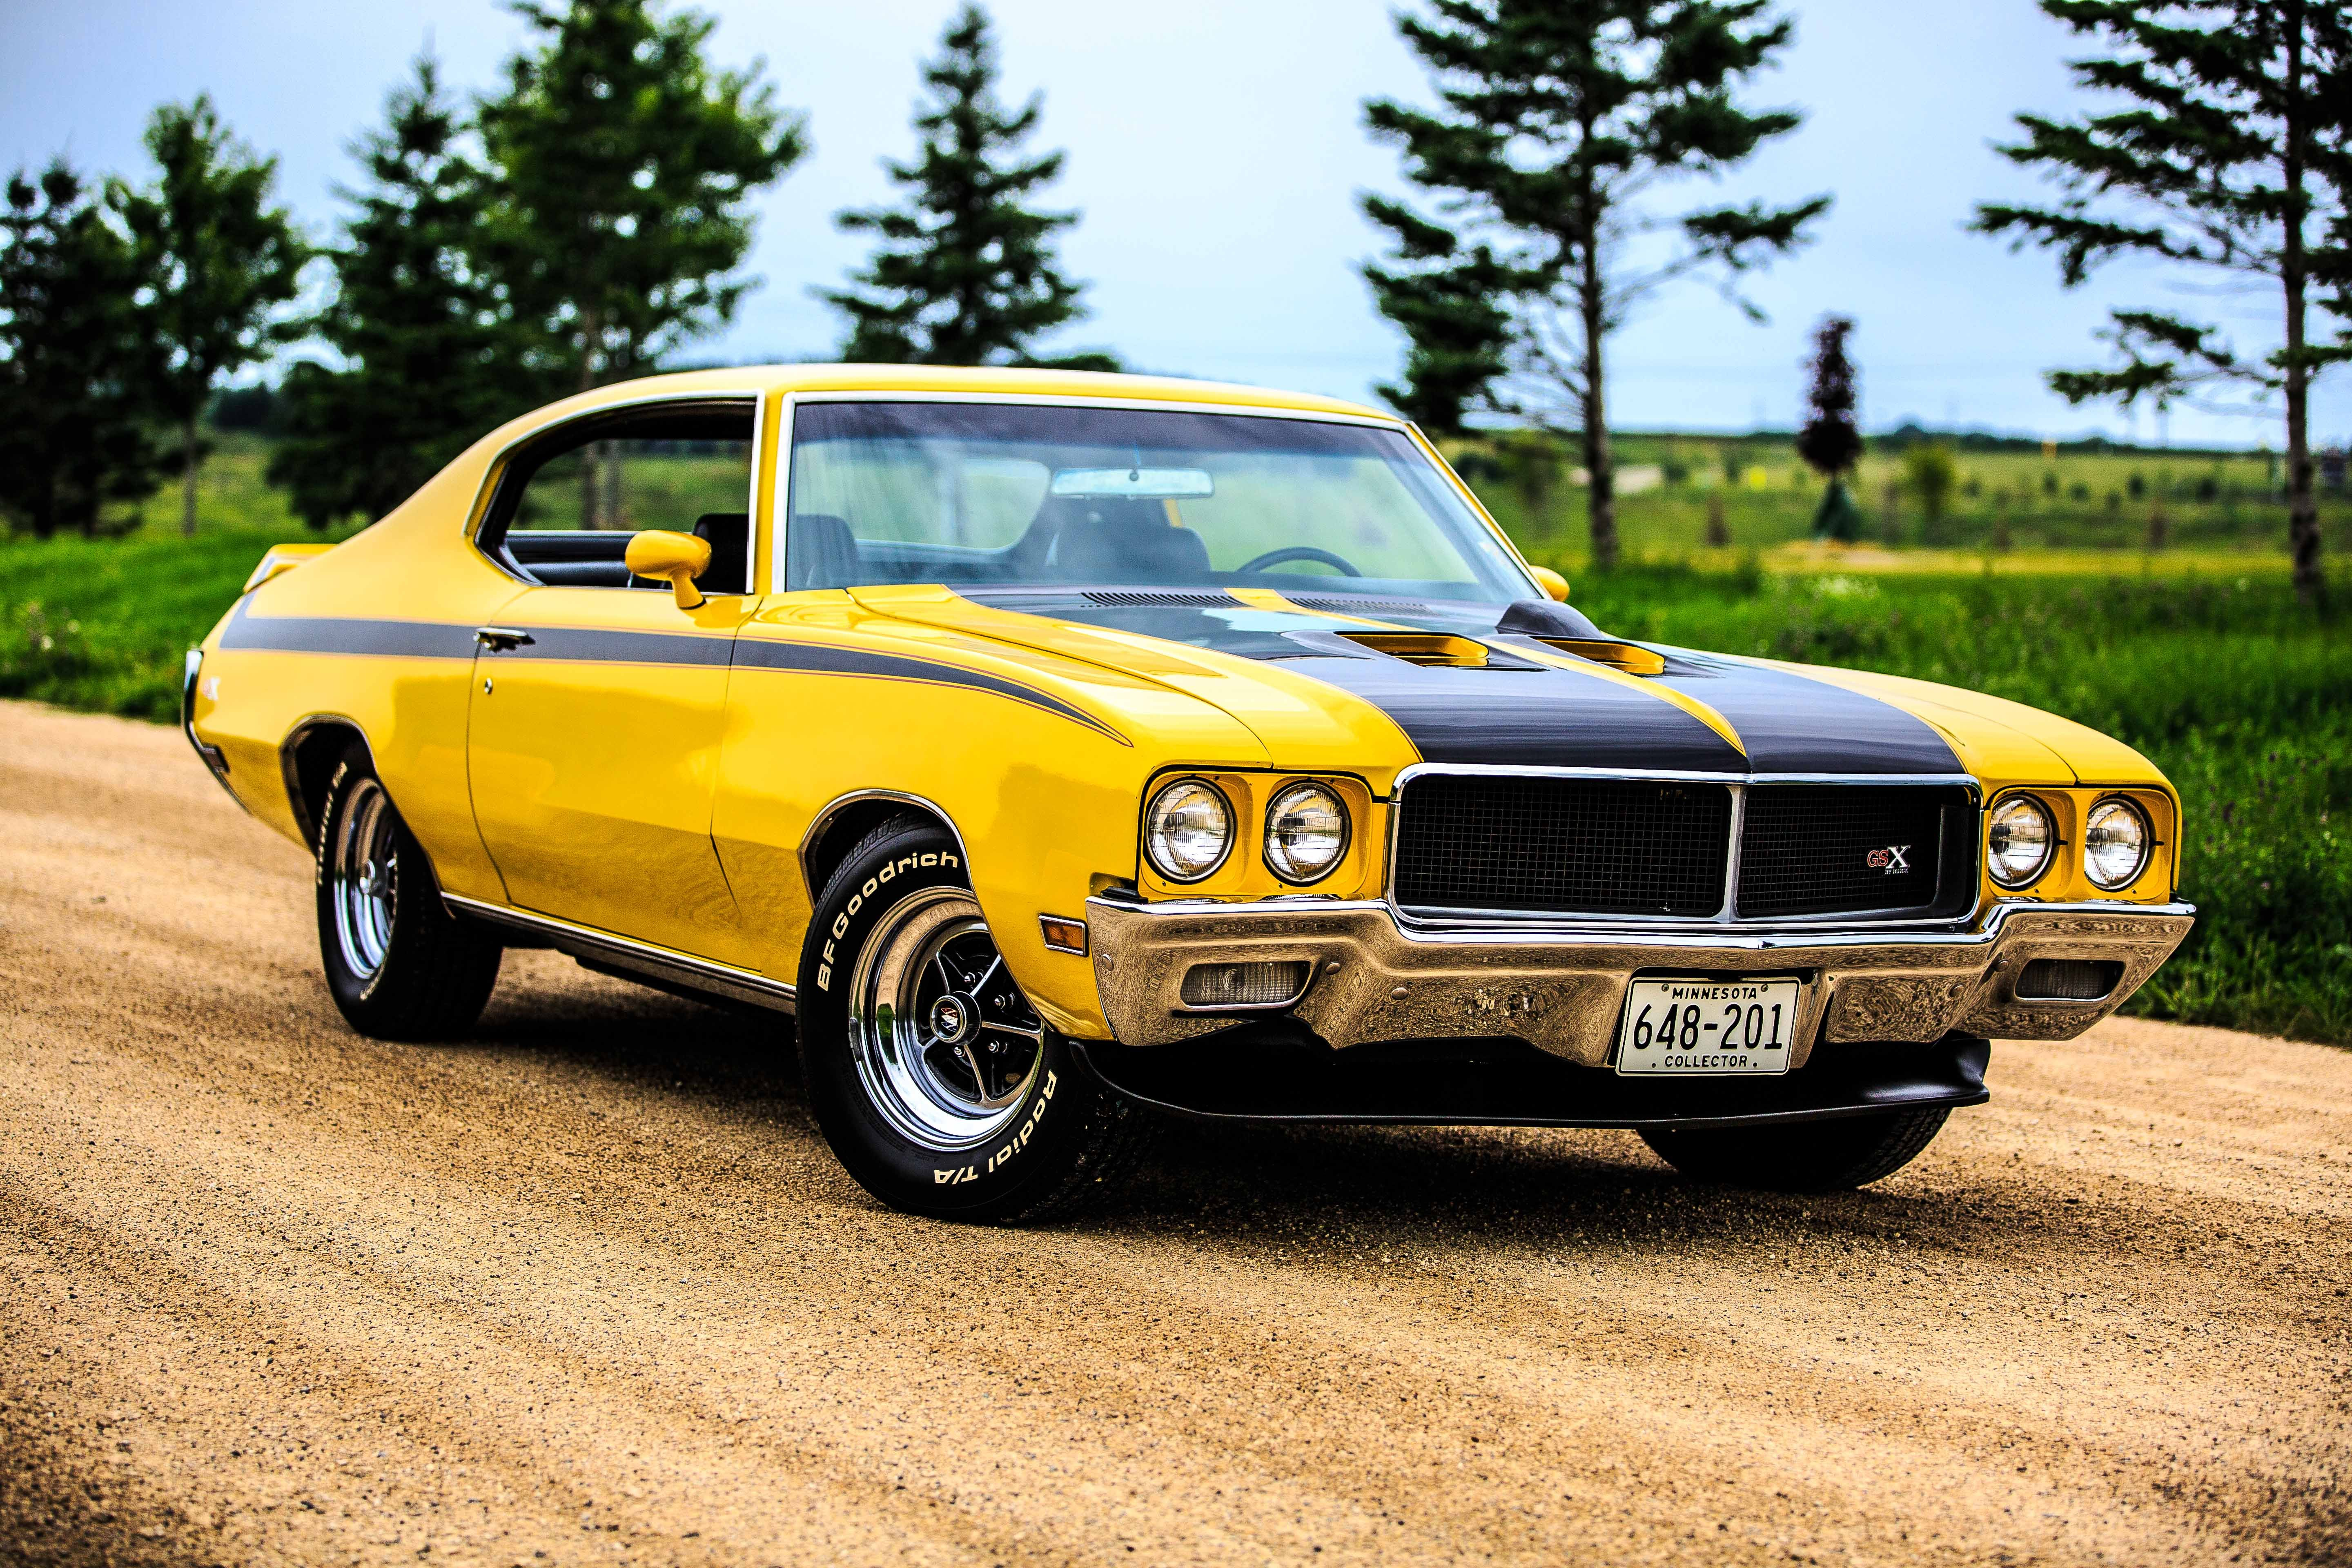 Classic Muscle Car Shot by TuckShot Photography in Woodbury, MN ...